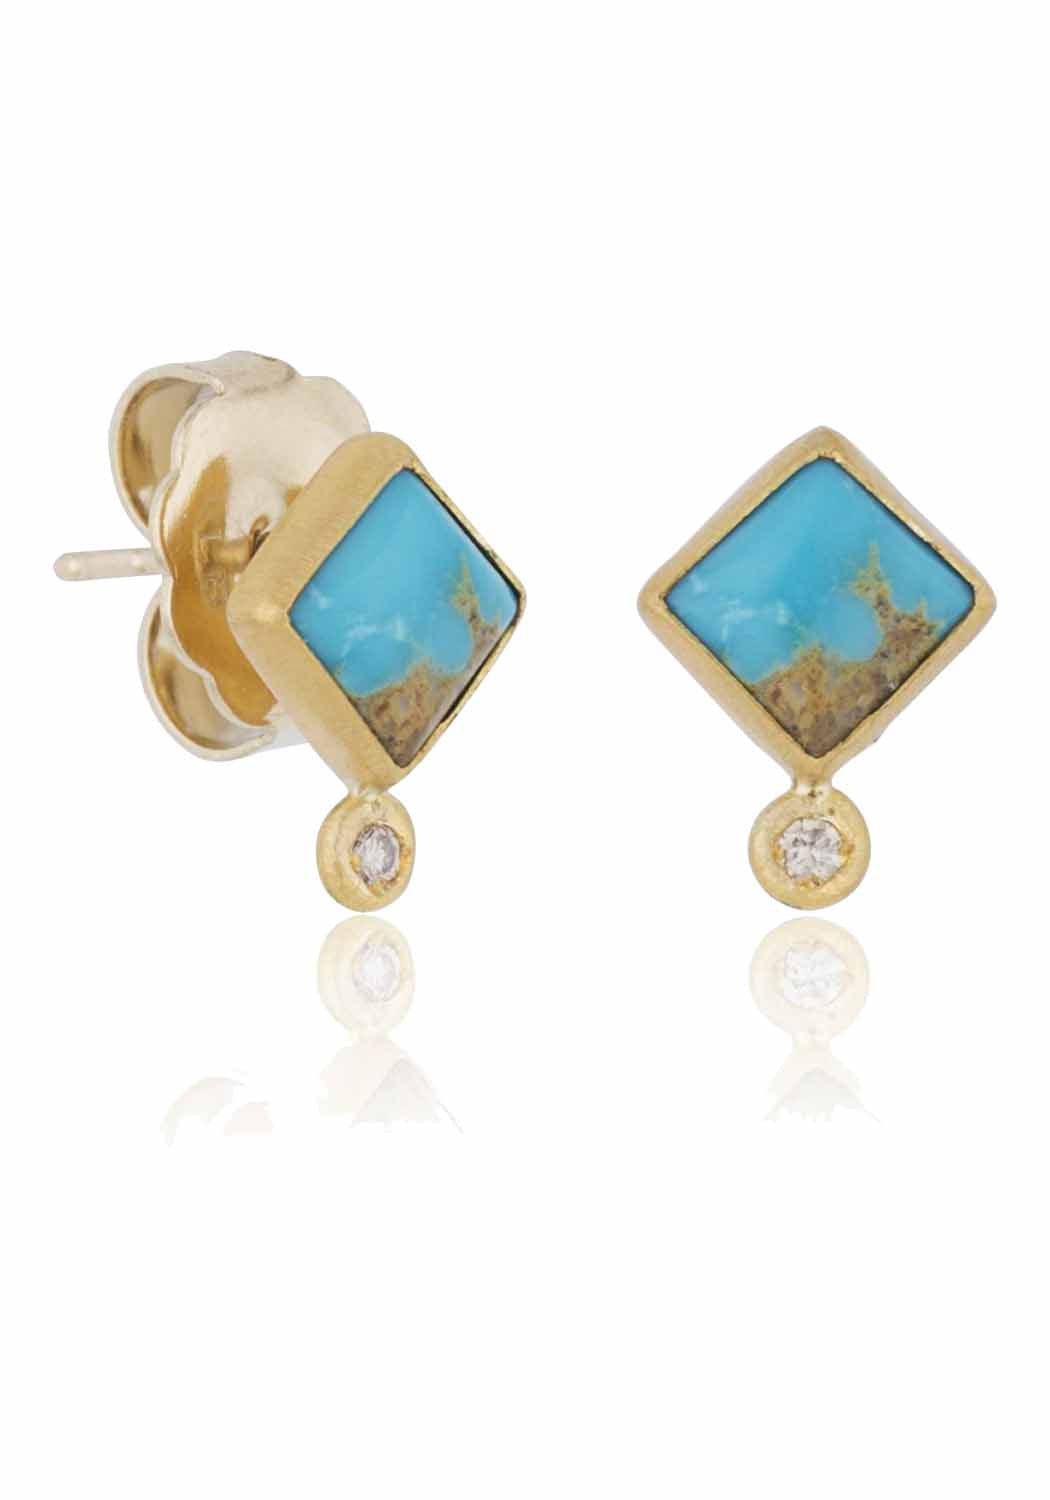 Lika Behar My World Gold & Turquoise Stud Earrings